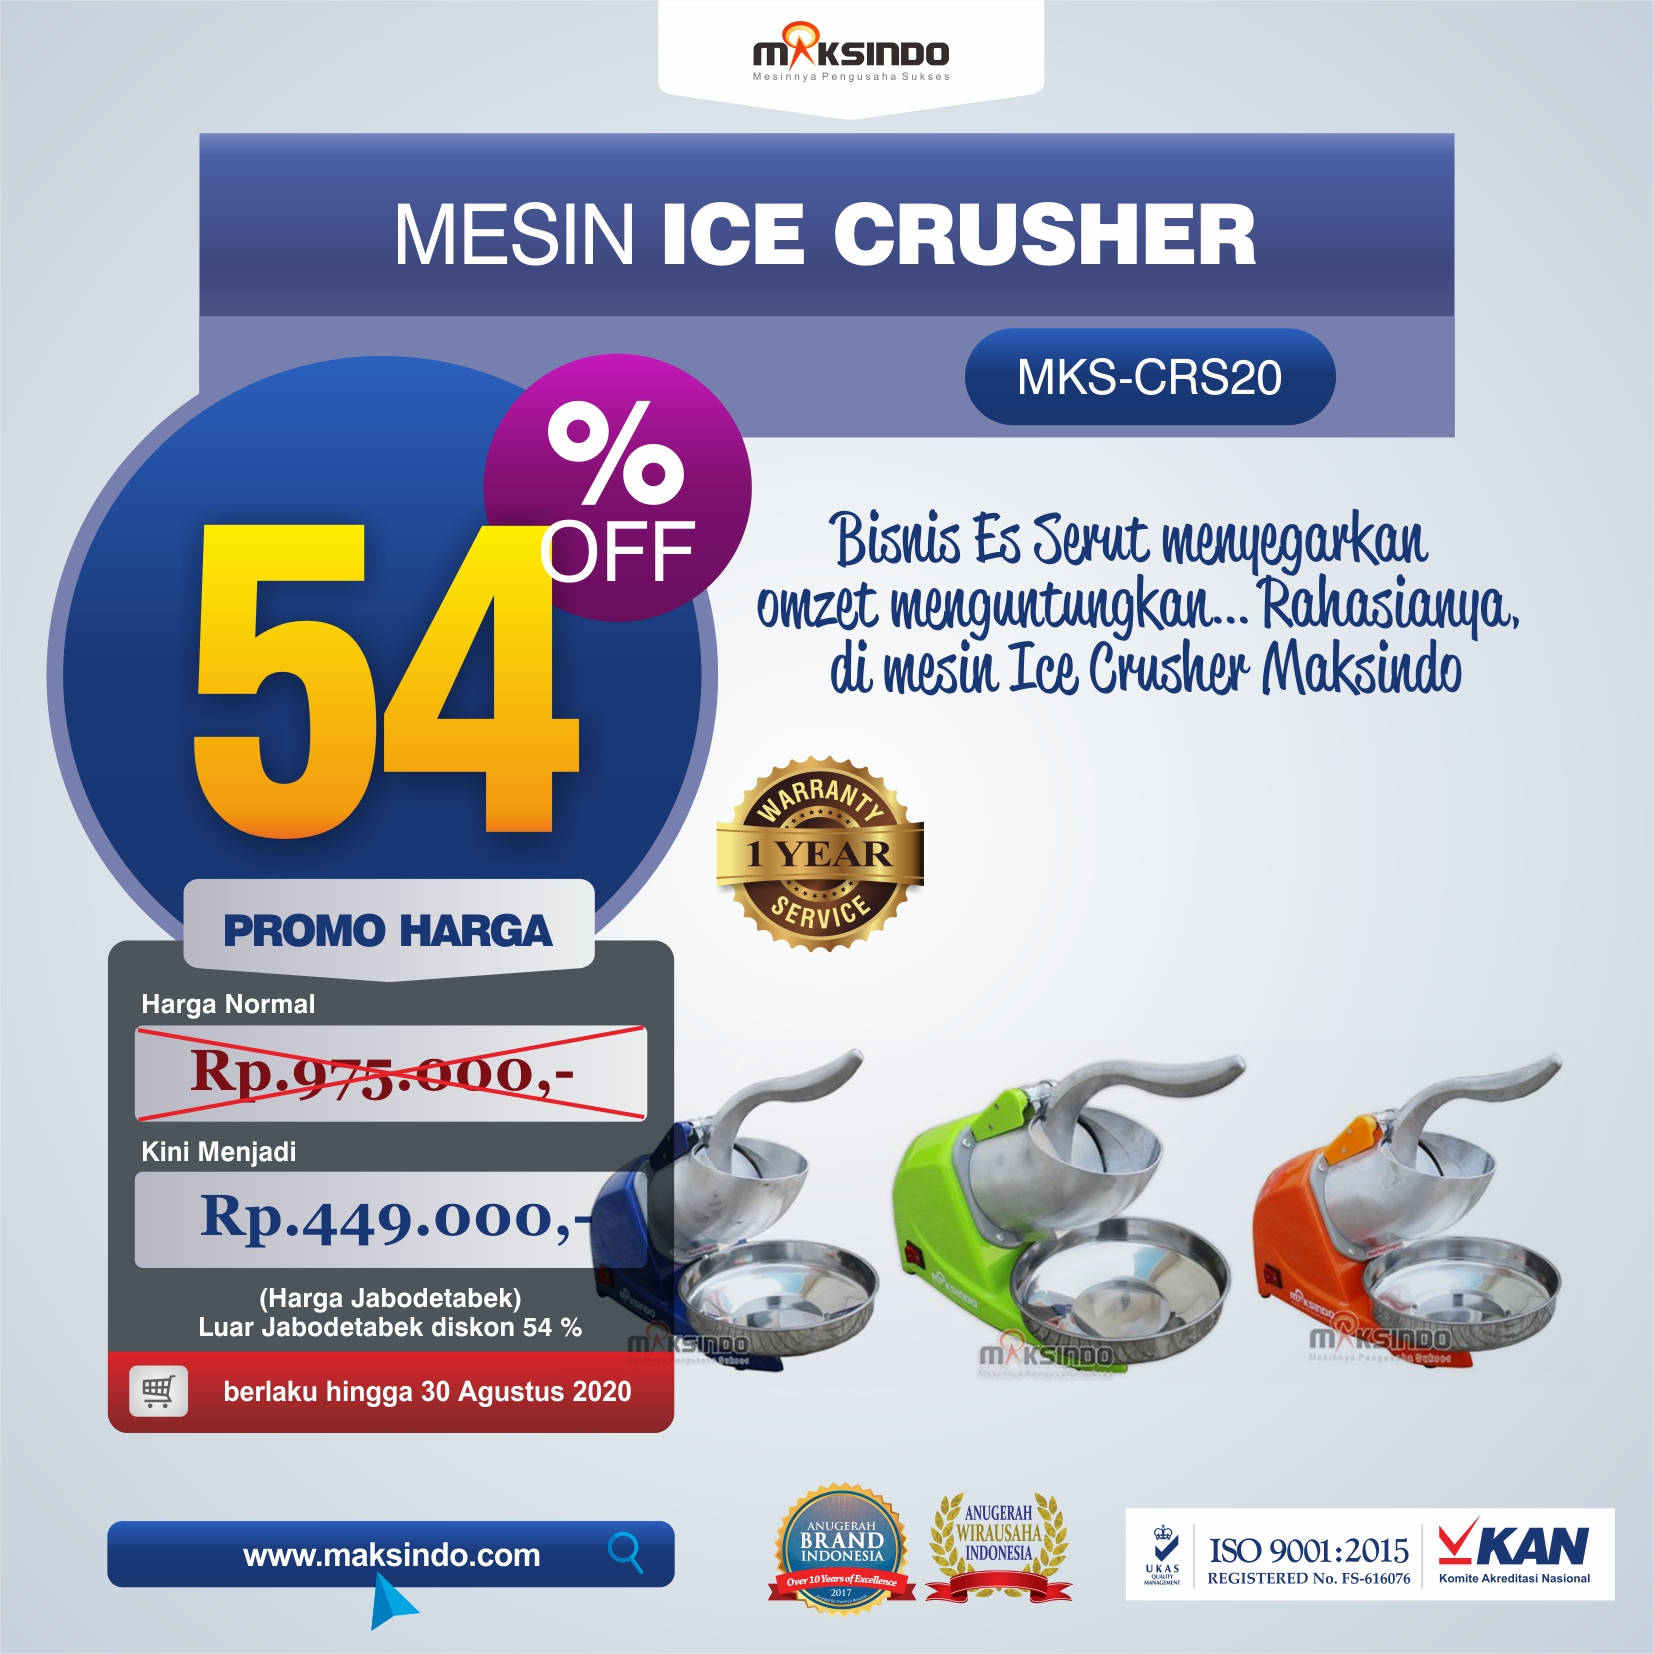 Jual Mesin Ice Crusher MKS-CRS20 di Banjarmasin